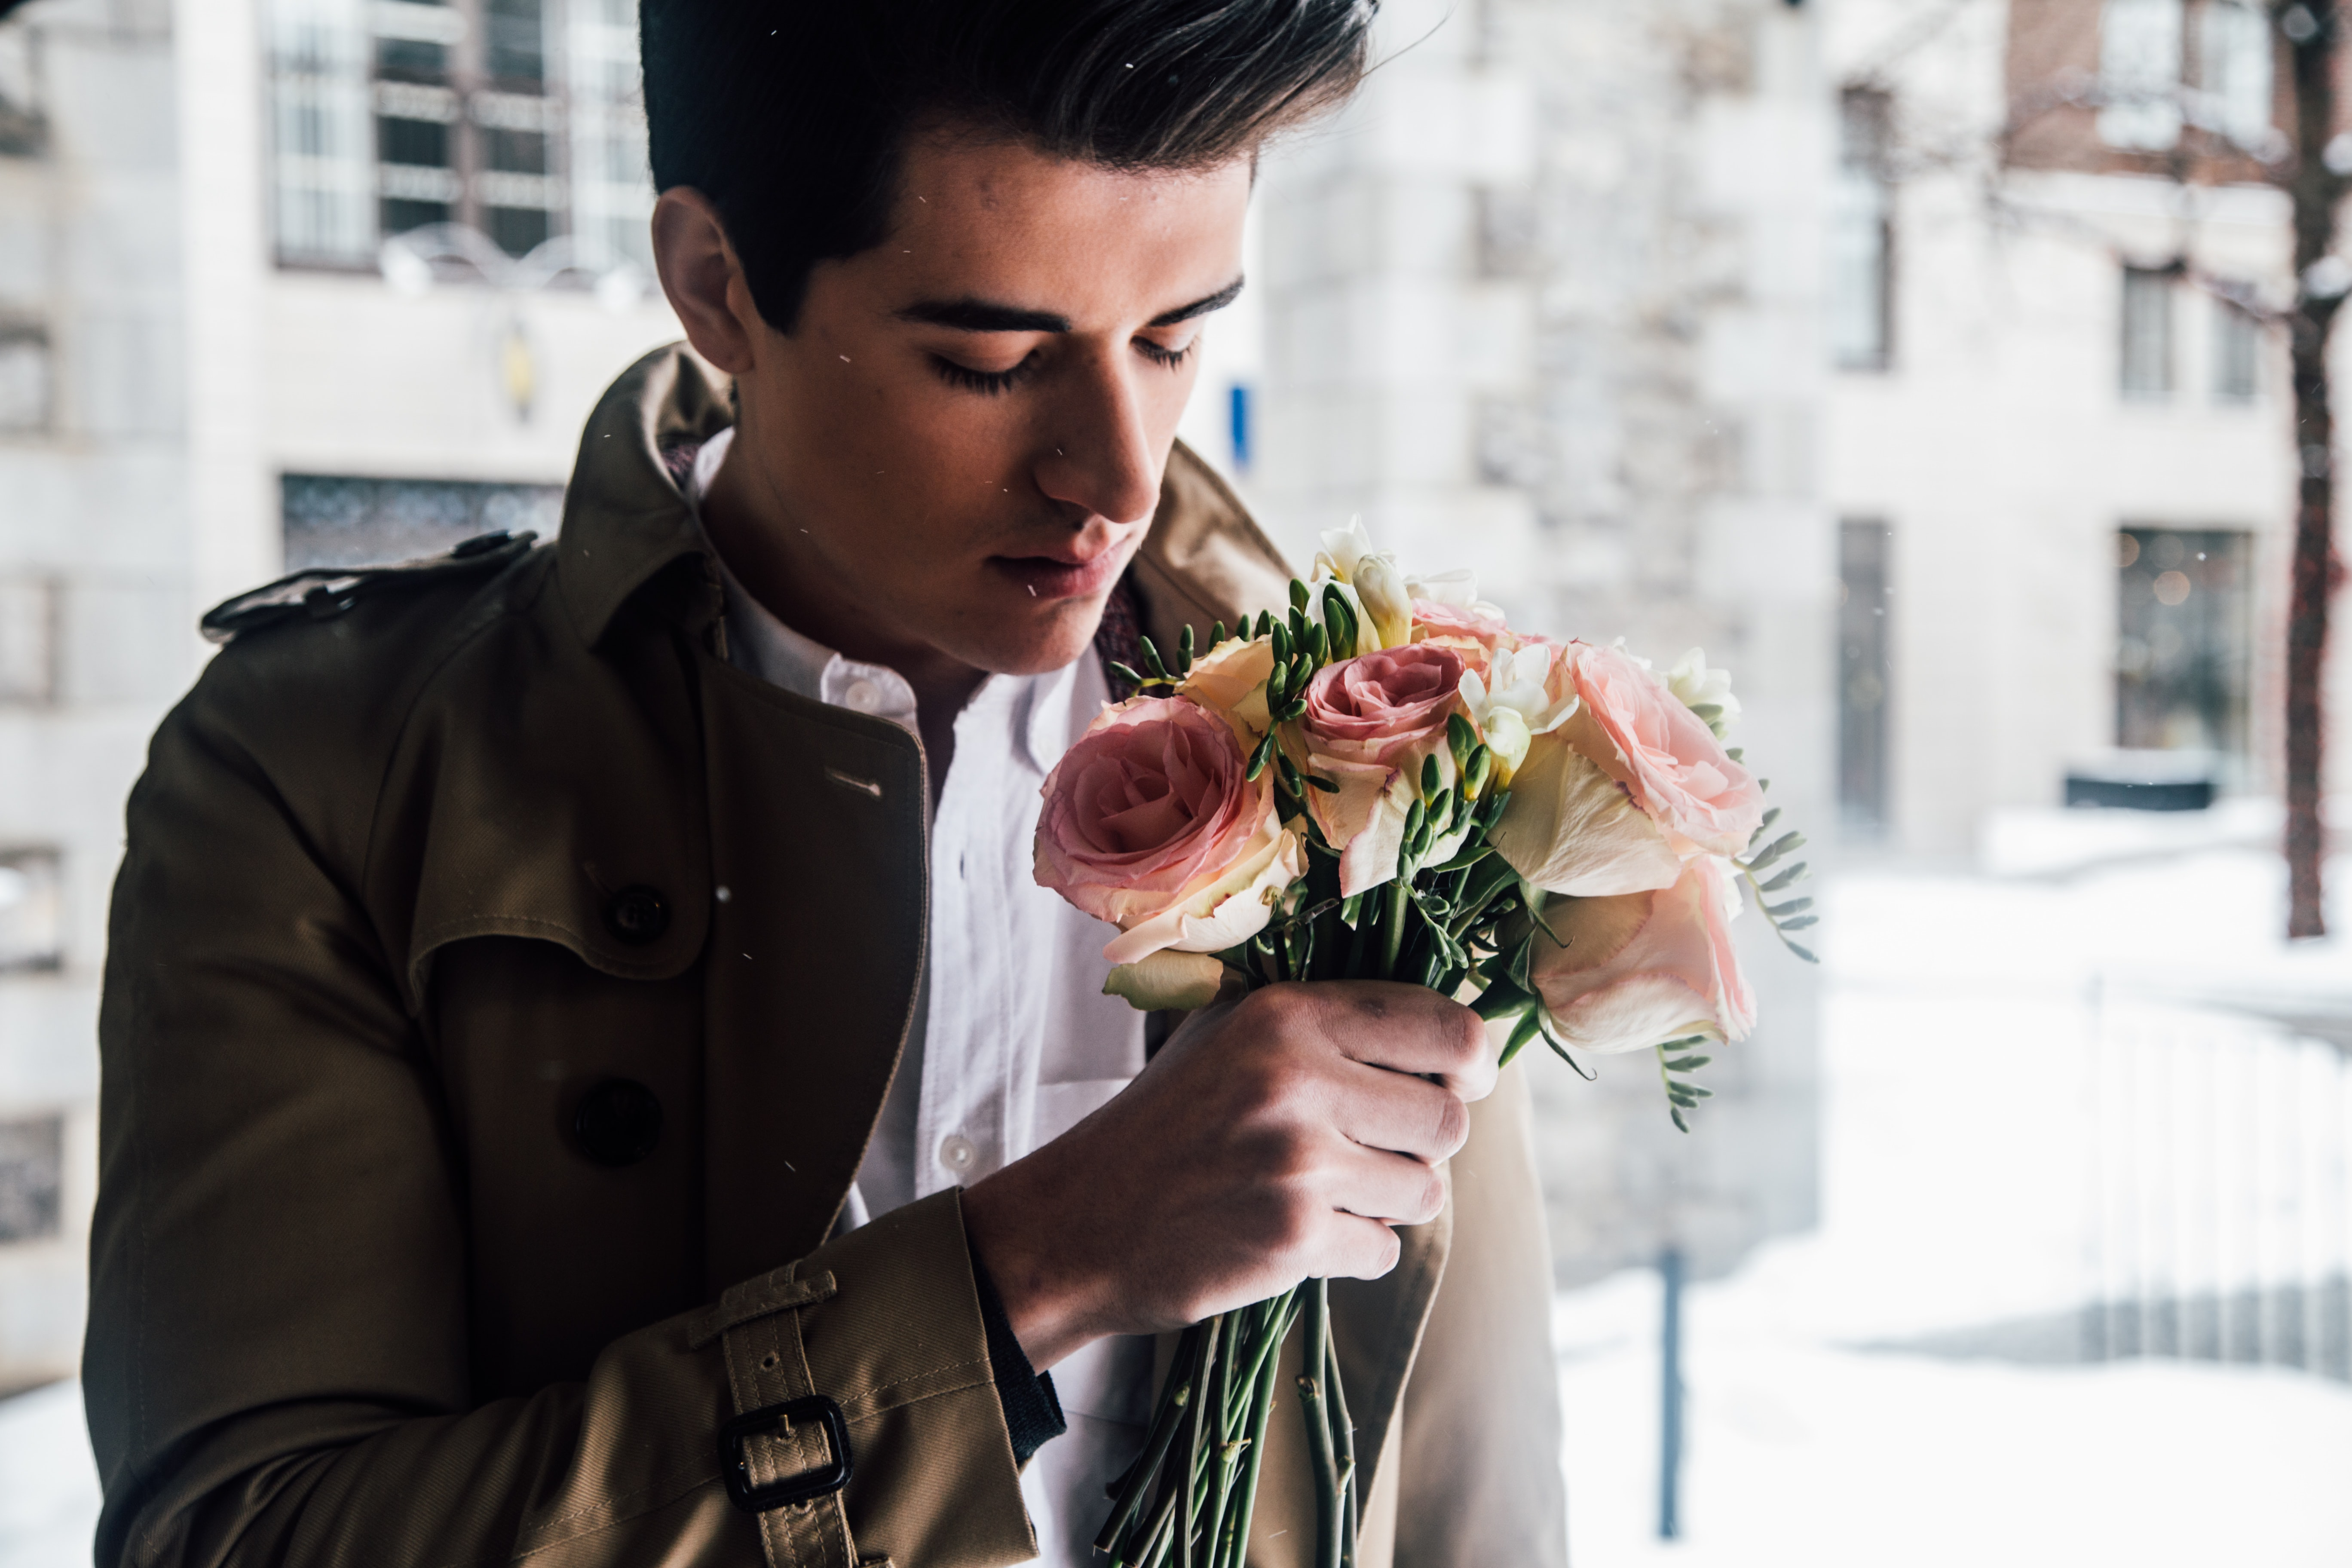 Trendy young man in a trenchcoat holds a romantic bouquet of flowers